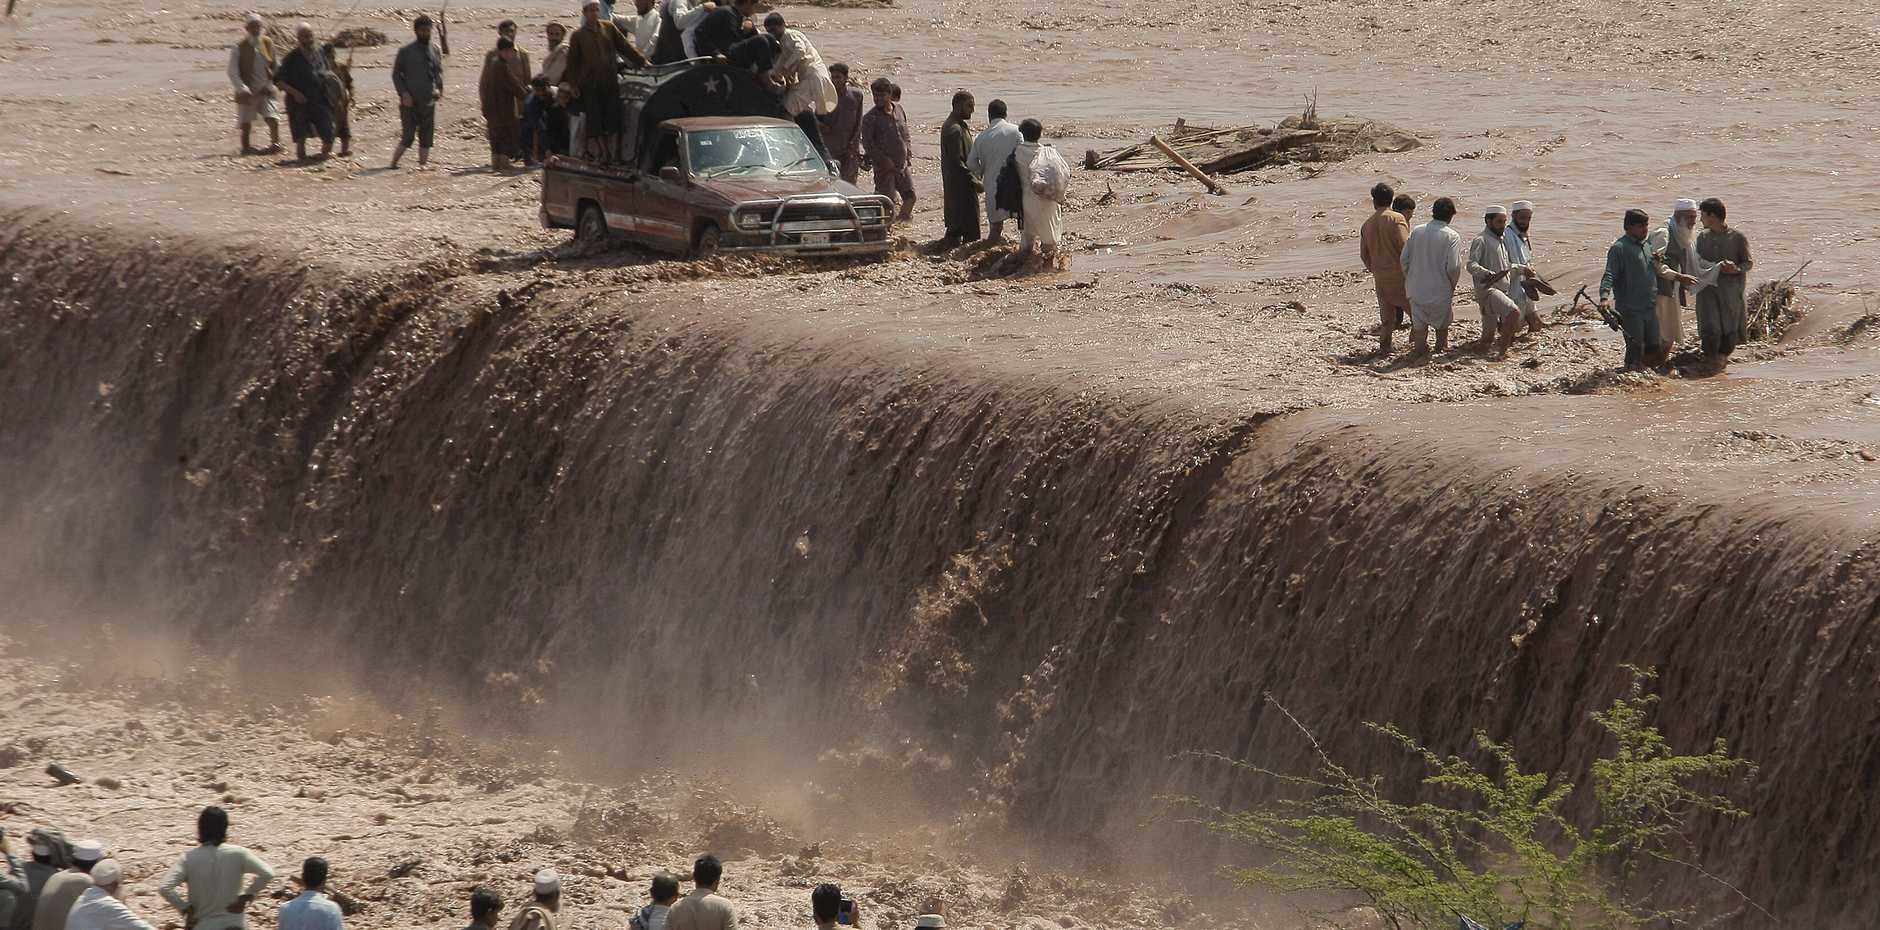 Pakistani villagers wade across a flooded road after heavy rain on the outskirts of Peshawar, Pakistan. Flash floods triggered by torrential rains Sunday killed dozens of people in northwest Pakistan, officials said.